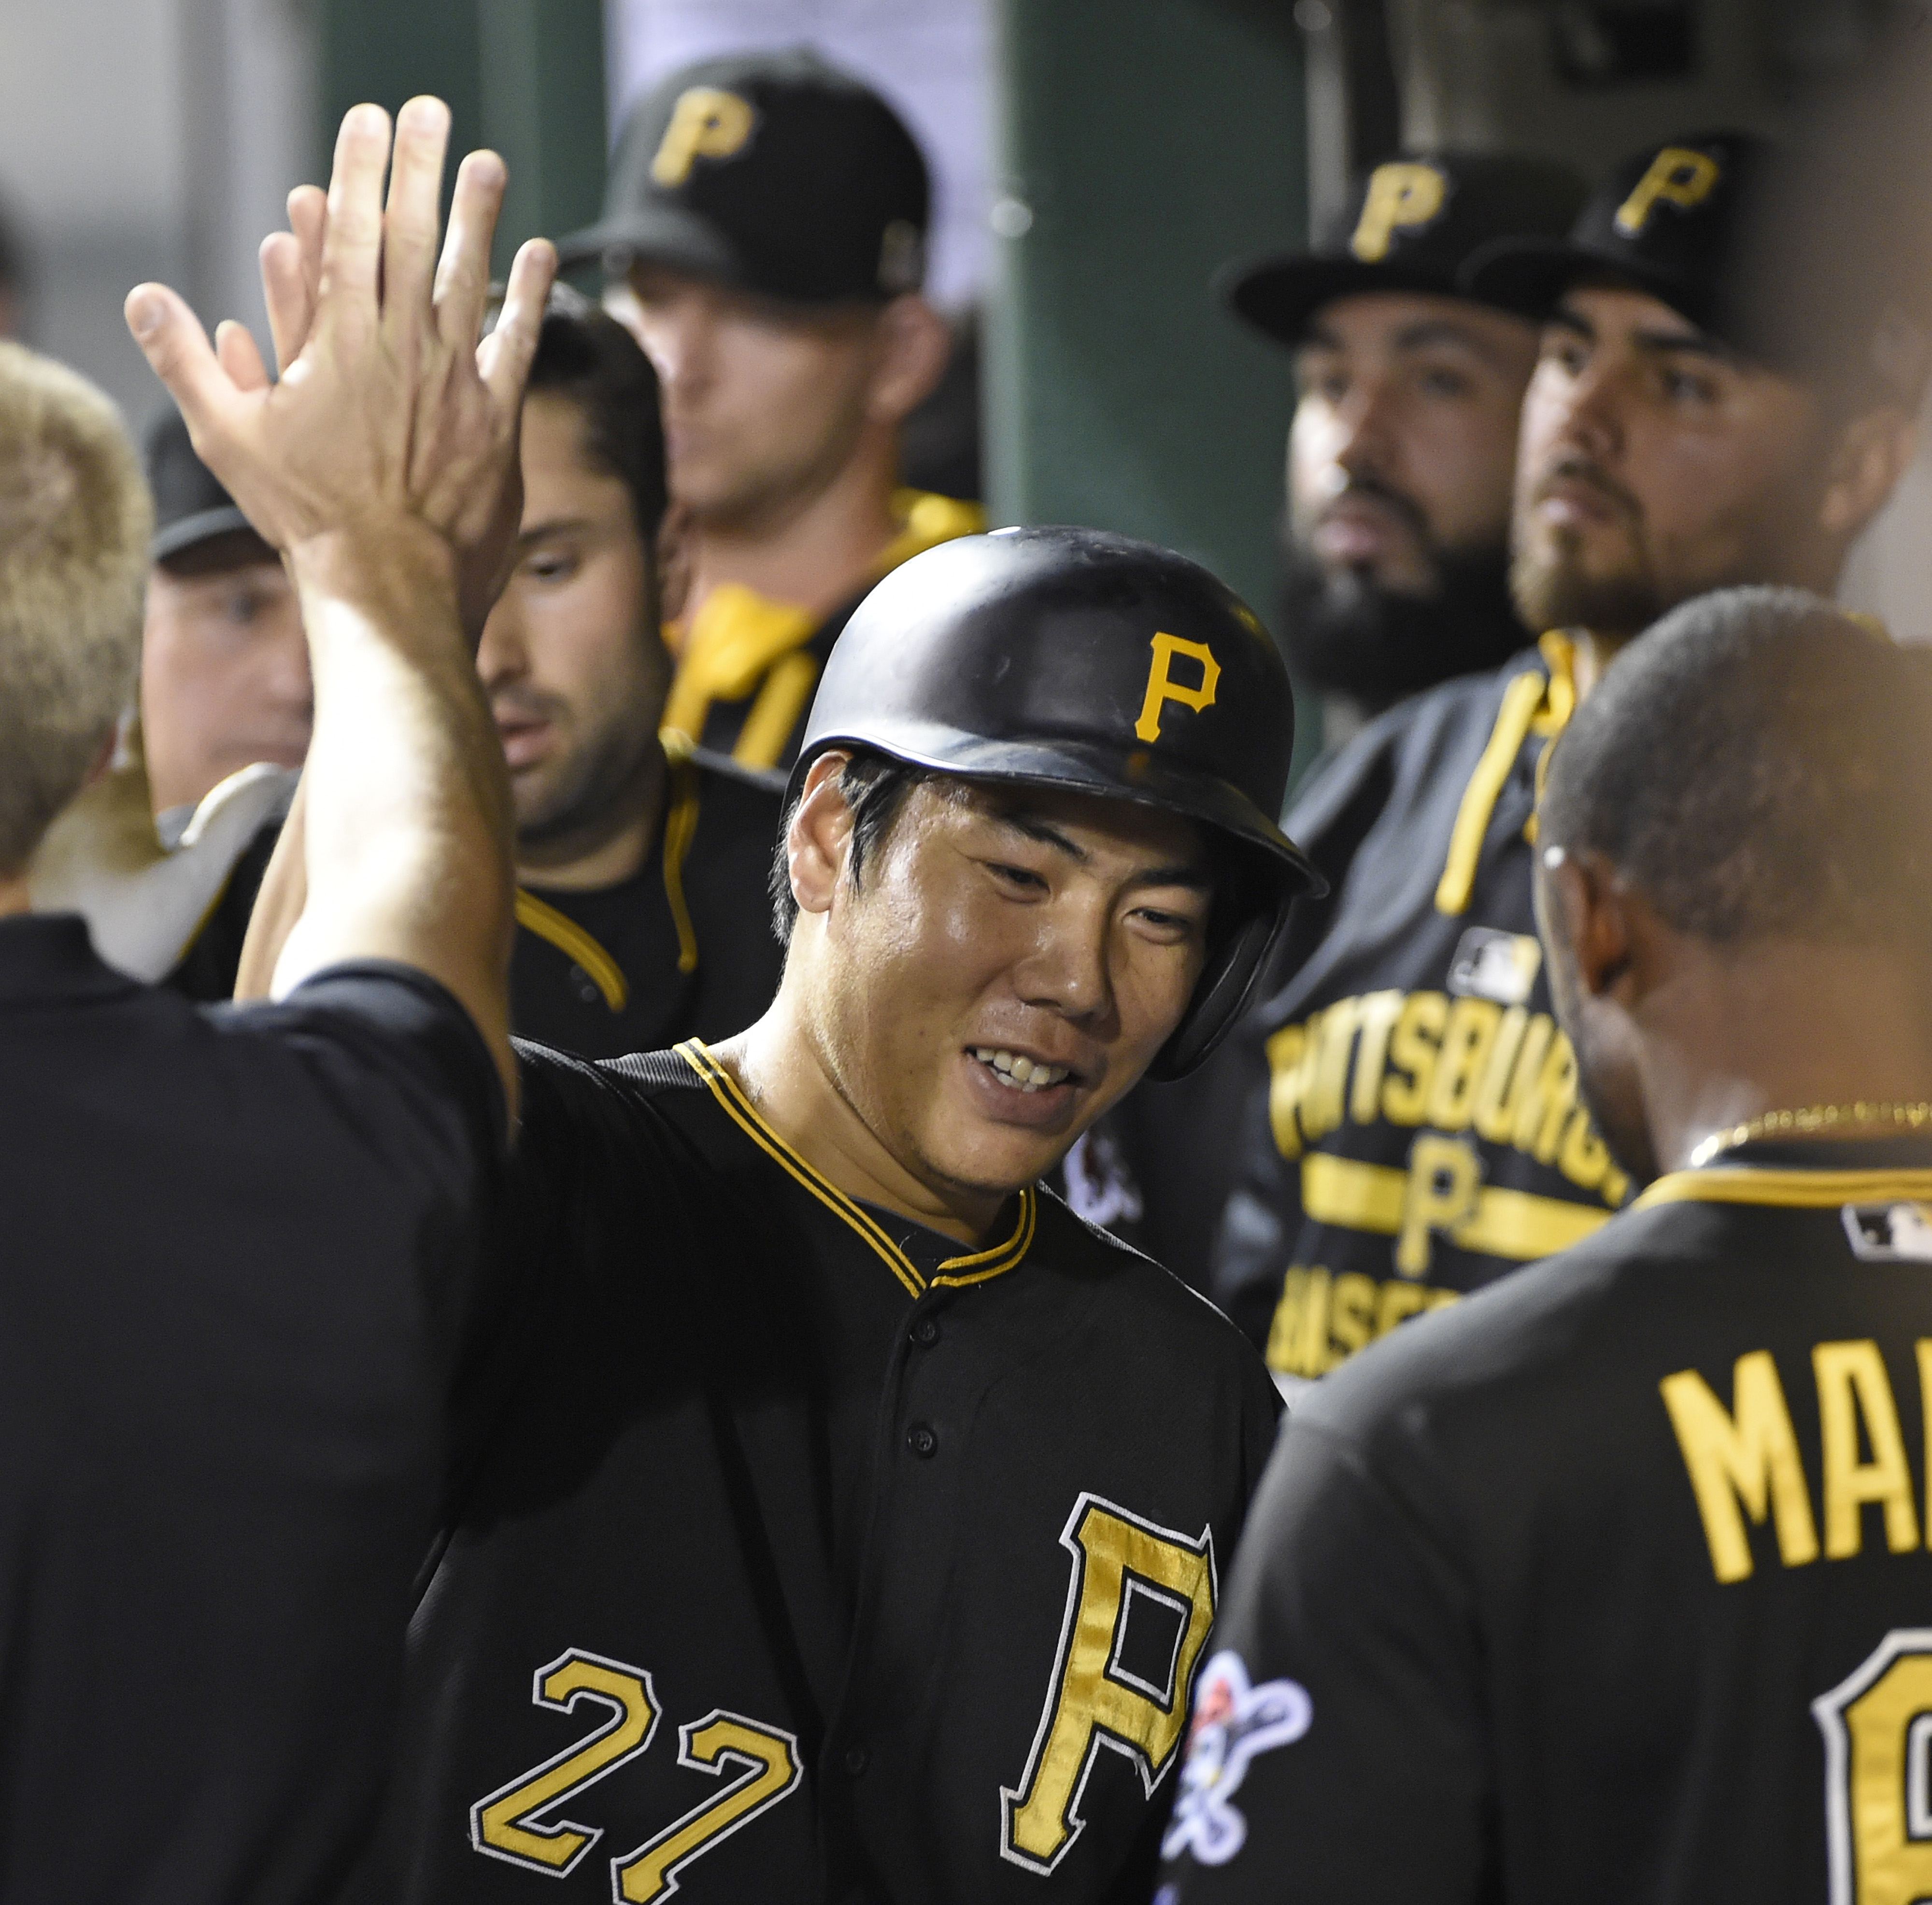 Pittsburgh Pirates' Jung Ho Kang (27) is congratulated in the dugout after scoring a run against the Milwaukee Brewers in the seventh inning of a baseball game, Friday, Sept. 11, 2015, in Pittsburgh. (AP Photo/Fred Vuich)